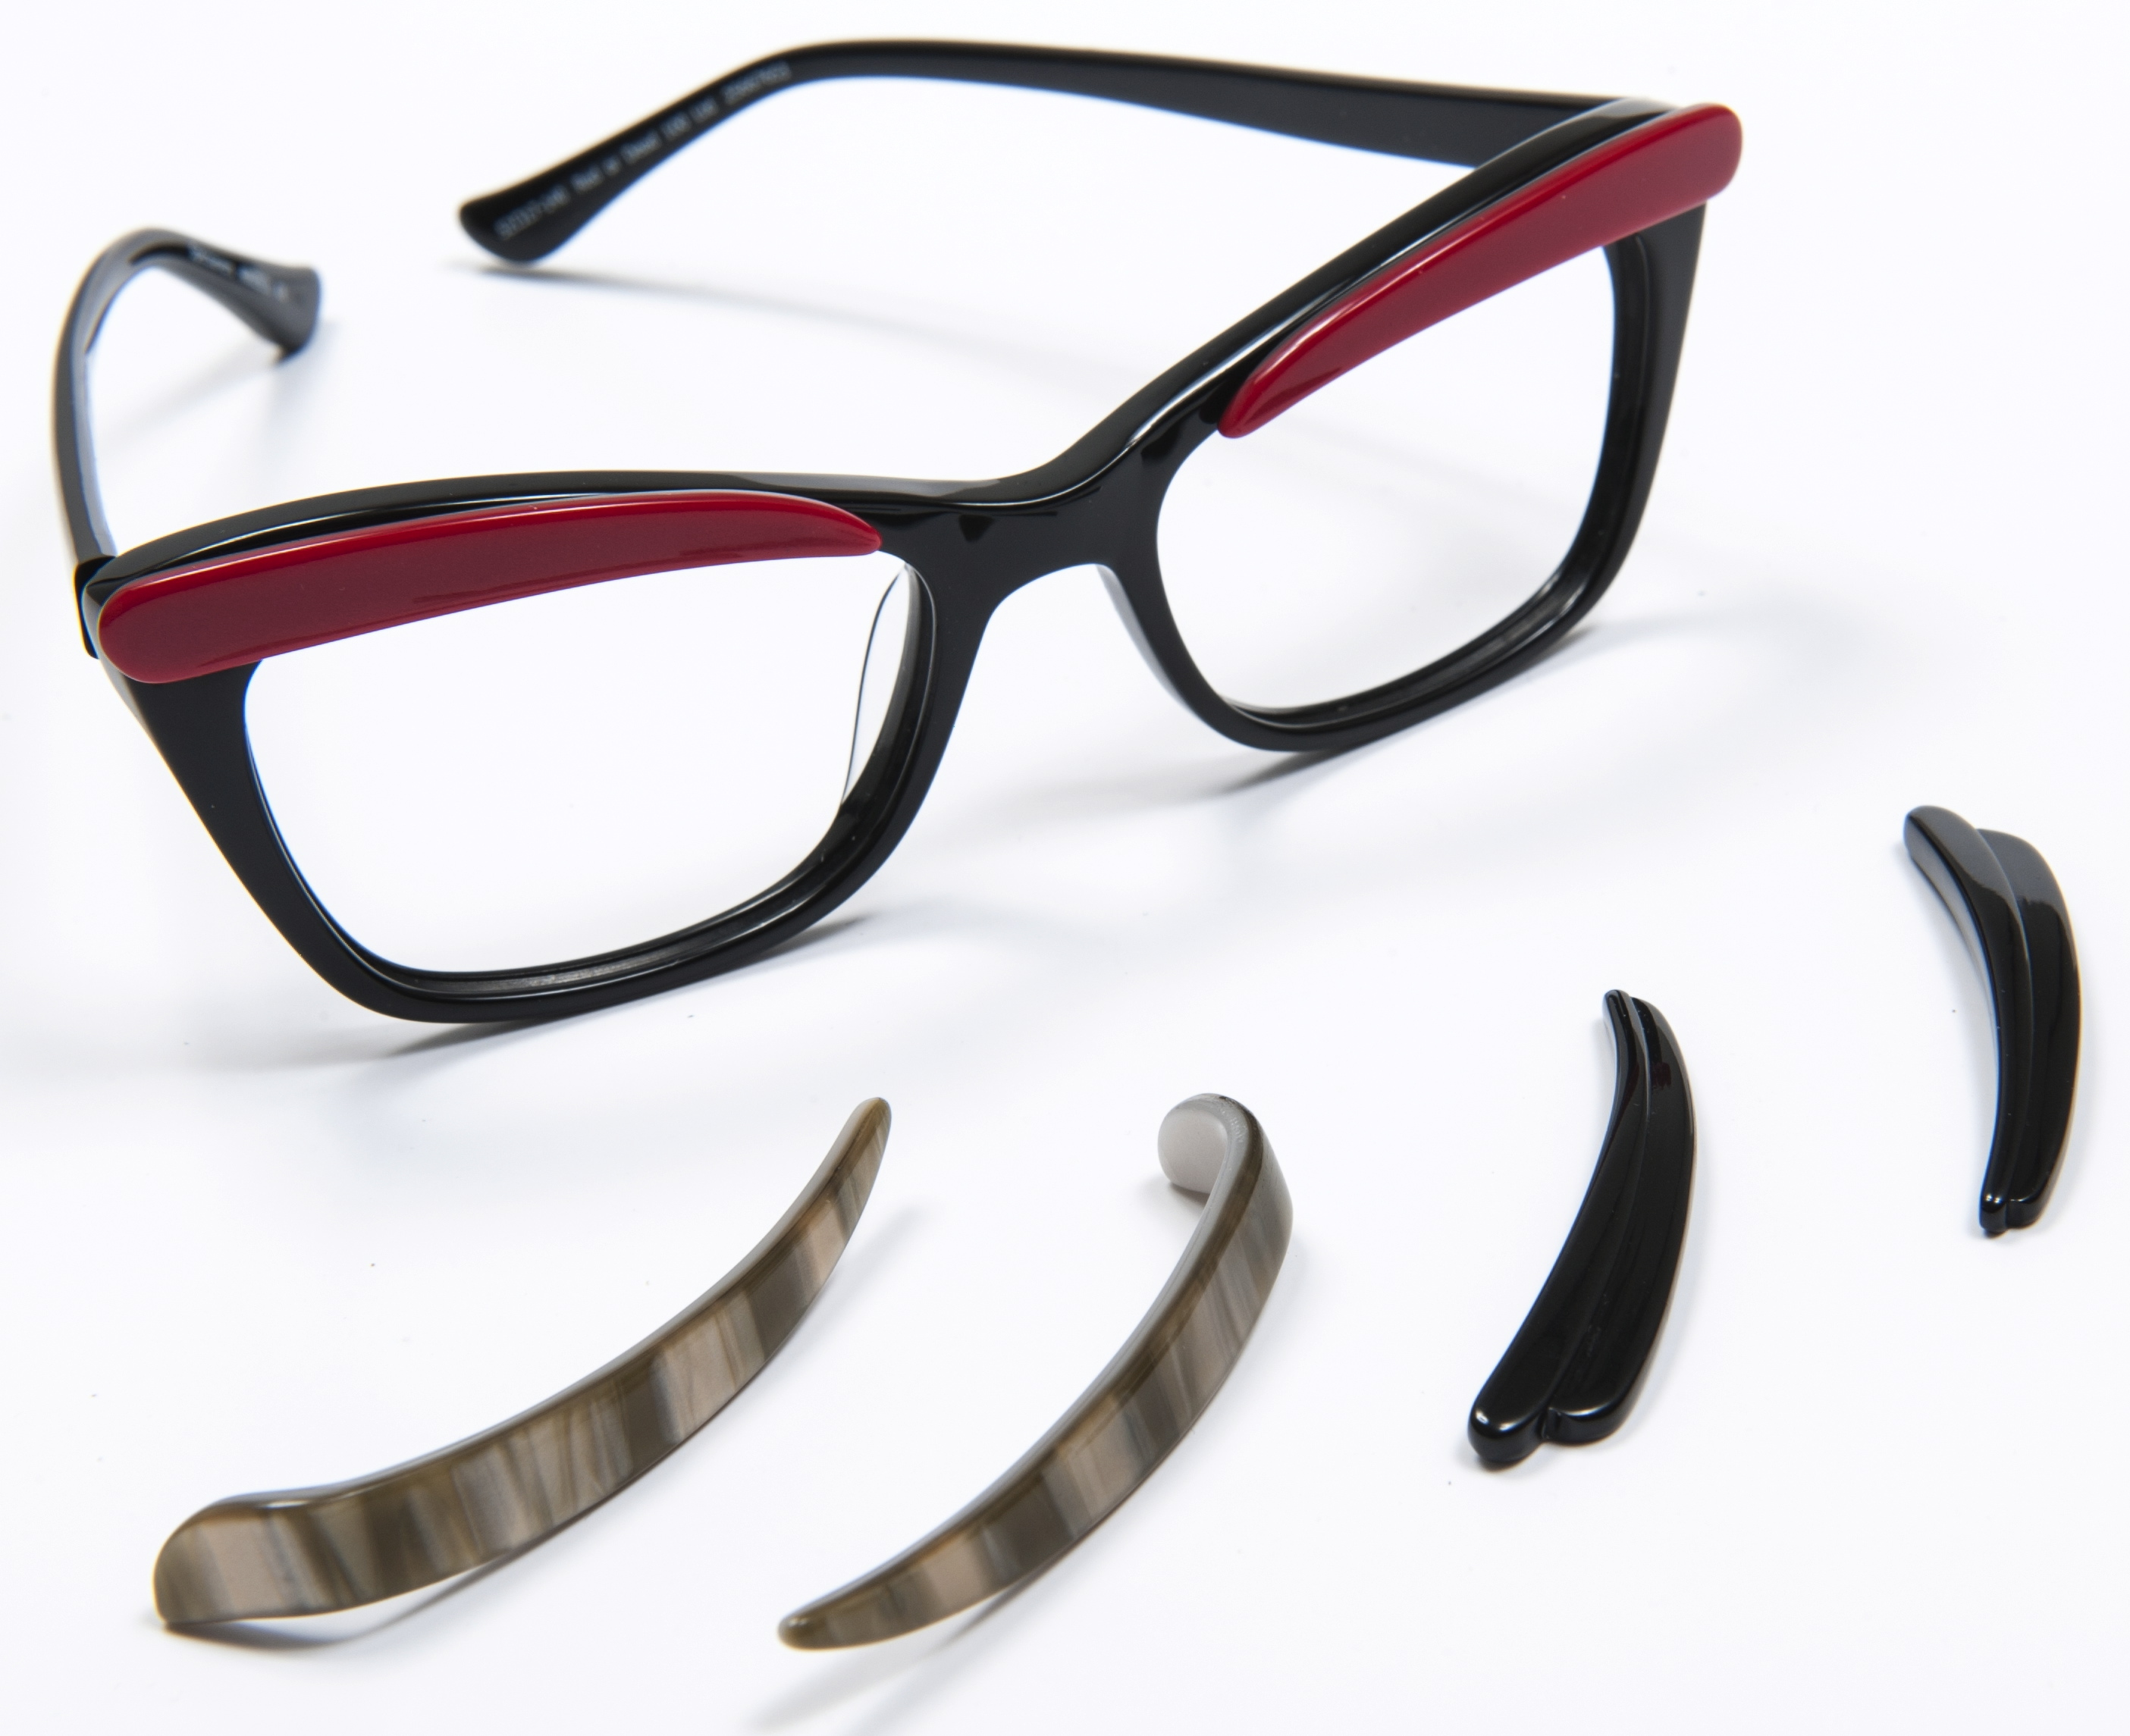 eac881772ec New glasses  Specsavers SS14 fashion frames launches